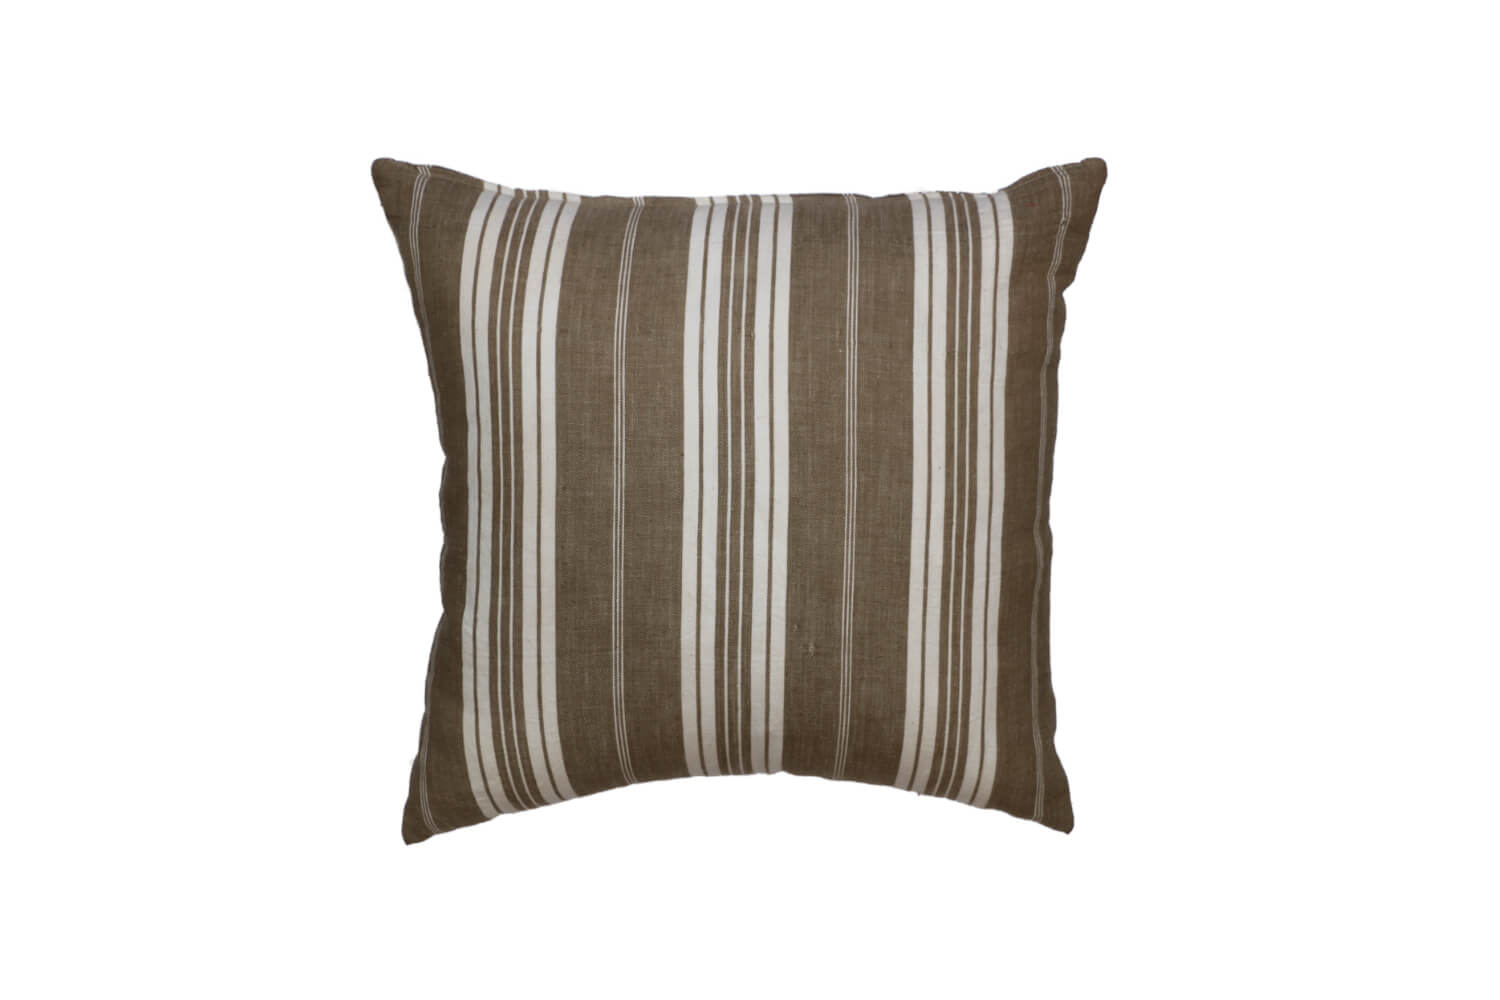 Taupe Stripe Cushion 2 - front and reverse